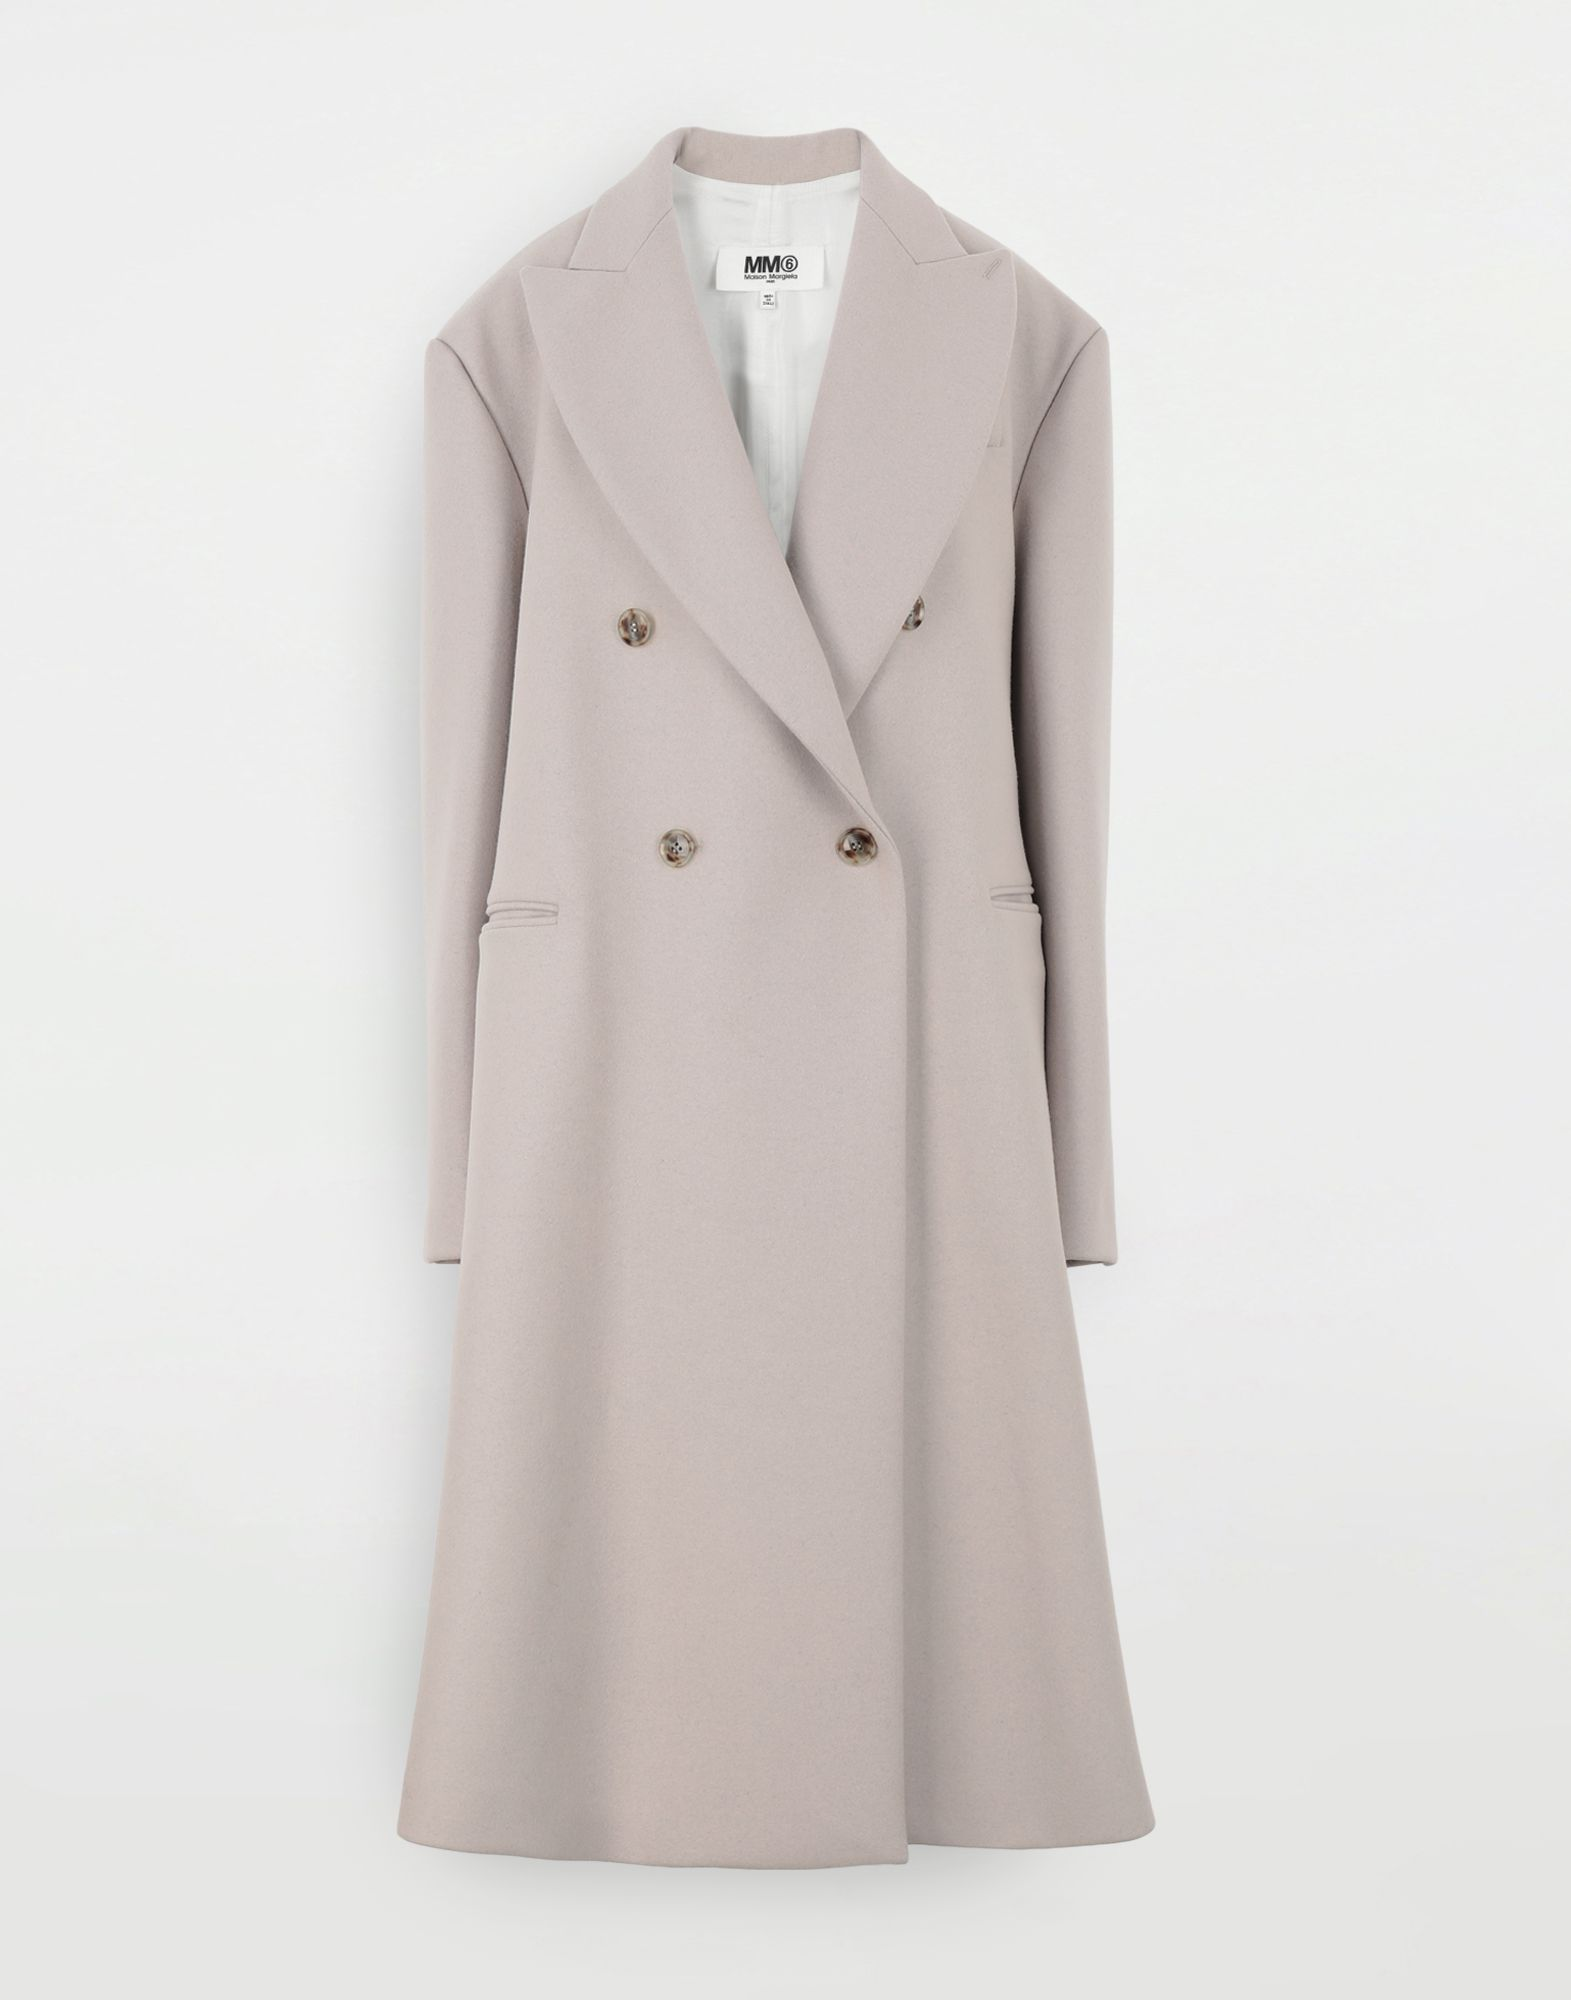 MM6 MAISON MARGIELA Oversized coat Coats and Trenches Woman f